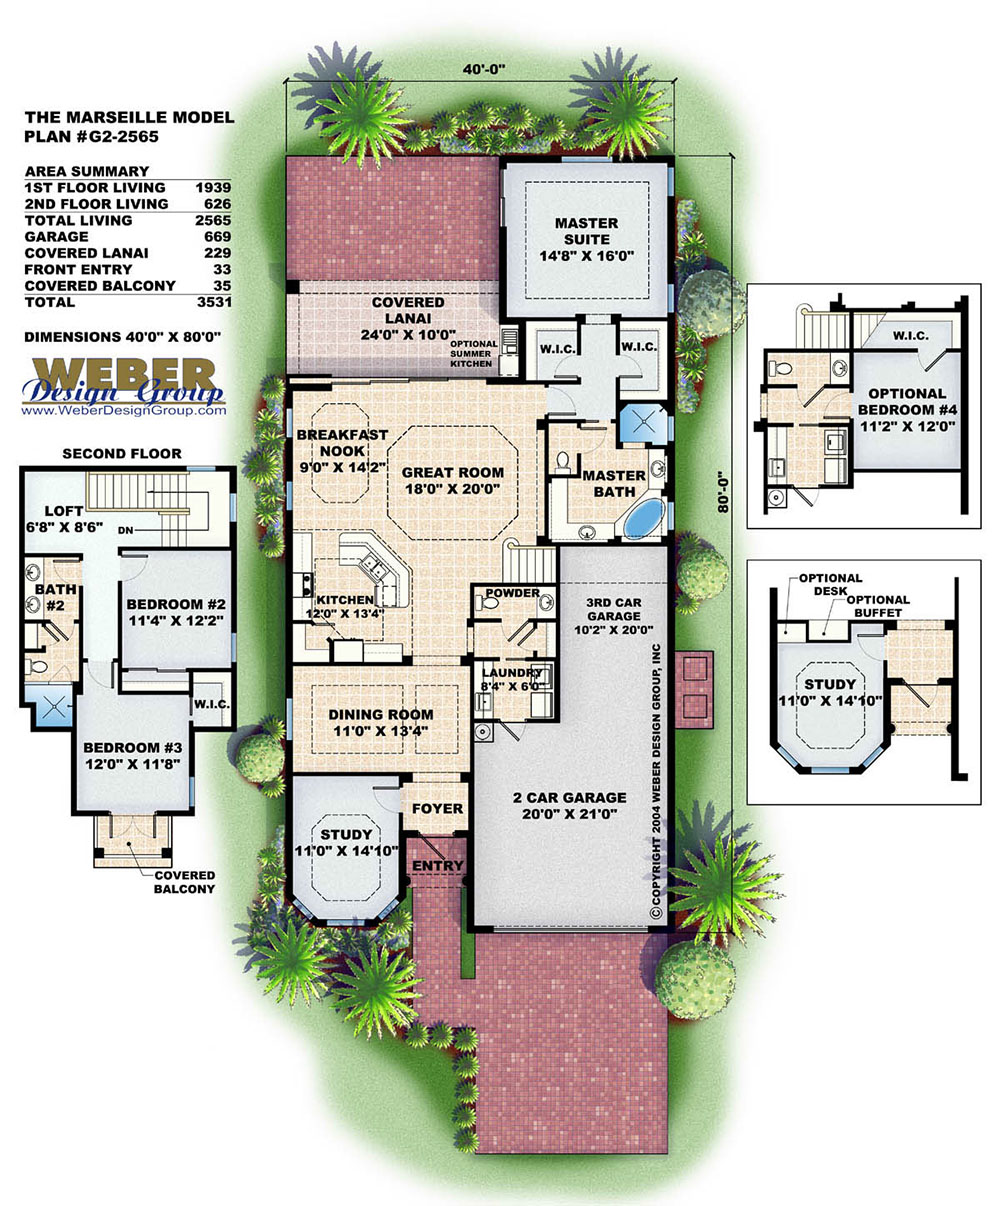 Morro bay home plan weber design group for Weber house plans